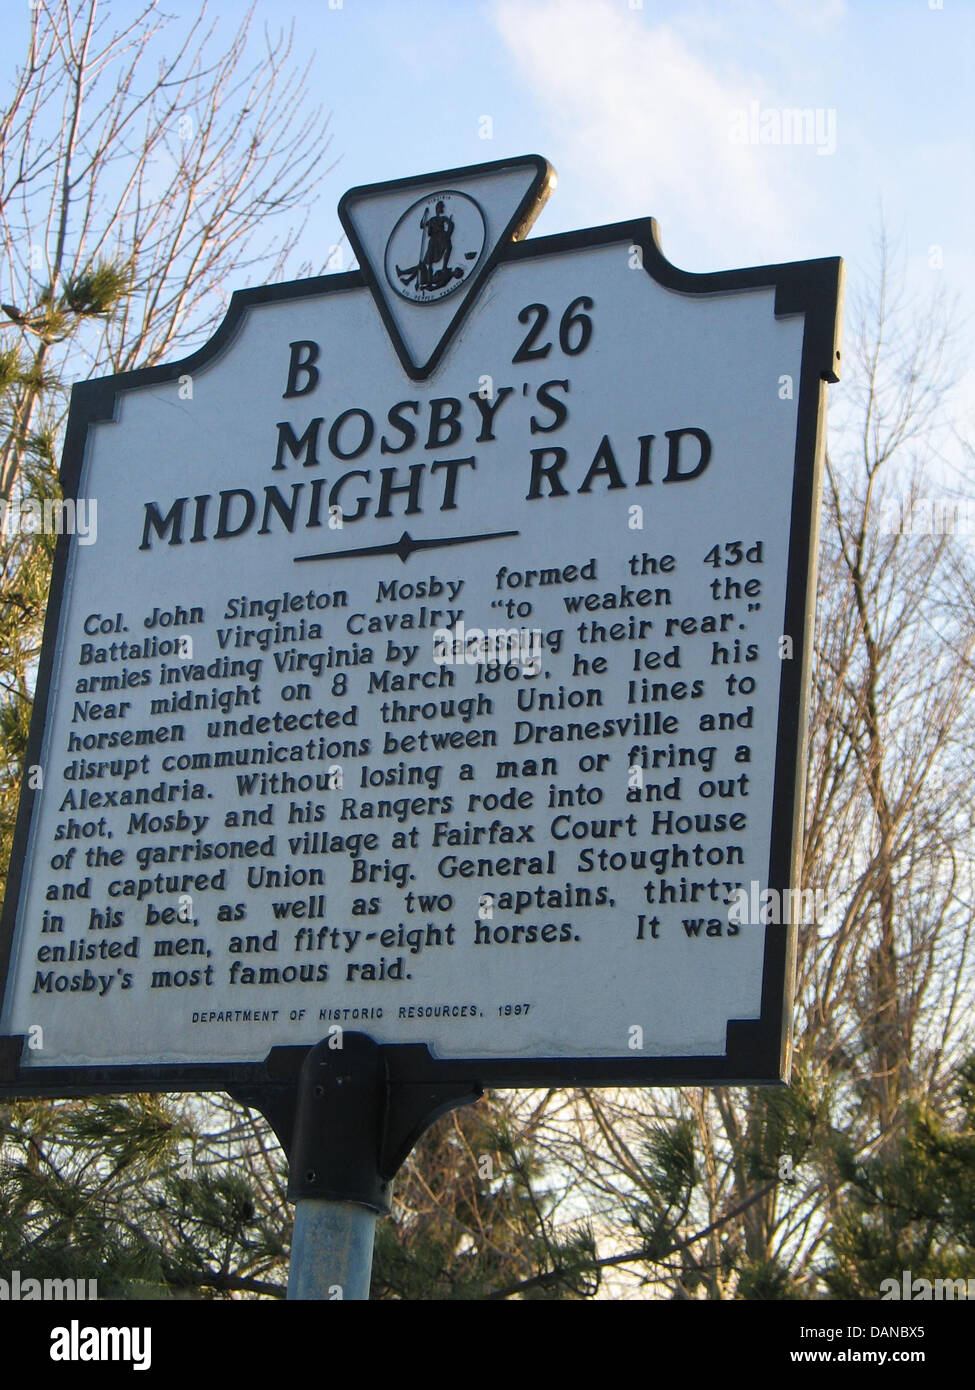 MOSBY'S MIDNIGHT RAID  Col. John Singleton Mosby formed the 43d Battalion Virginia Cavalry to 'weaken the - Stock Image